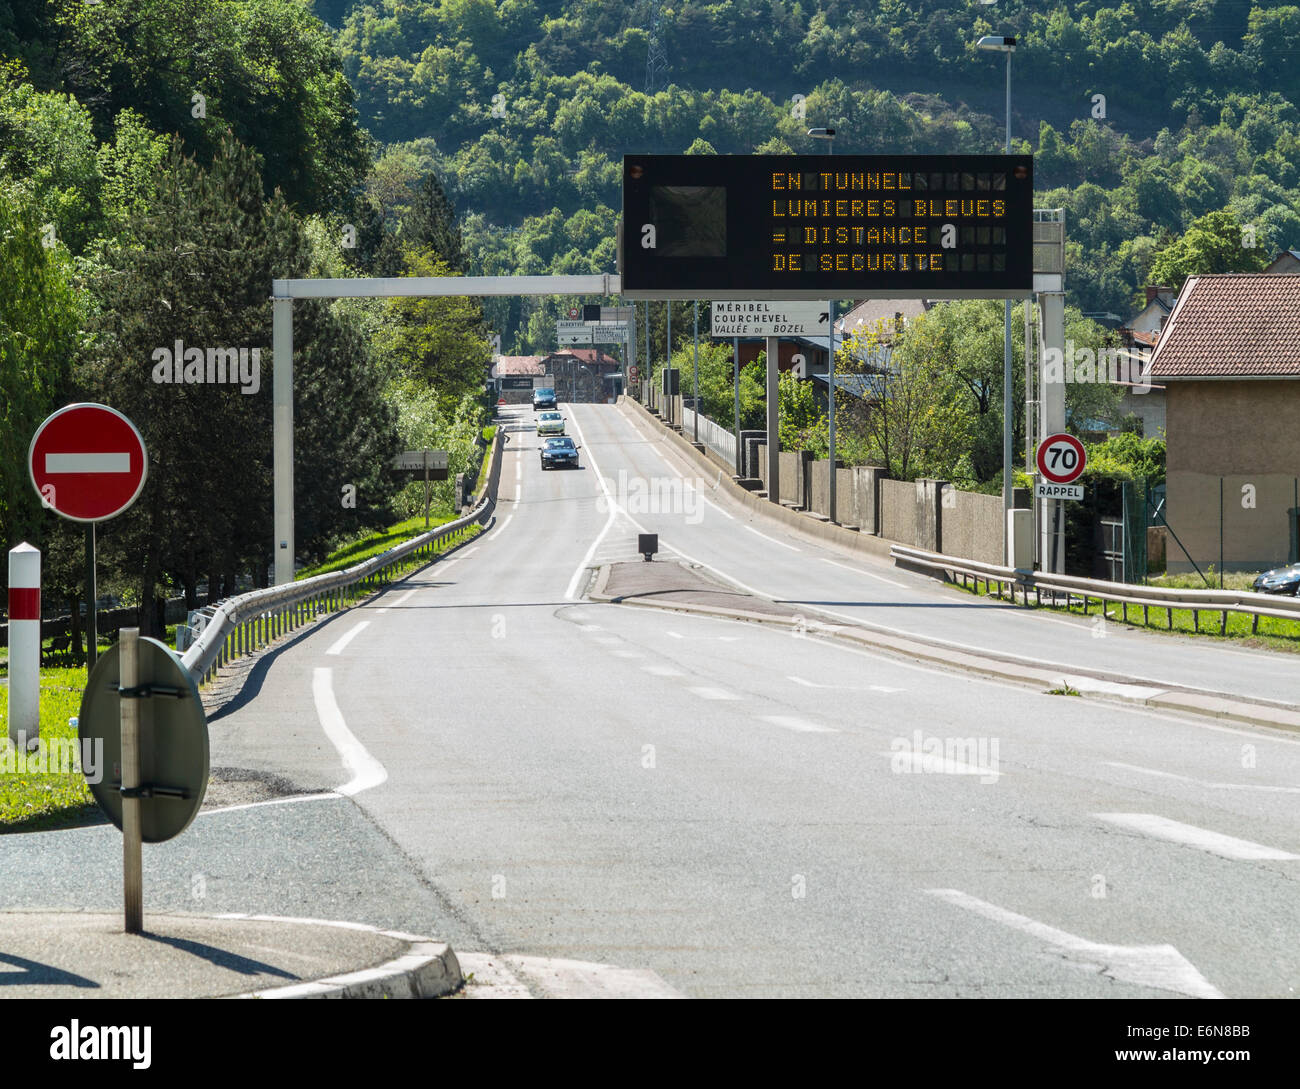 Road and warning gantry in Moutiers, Savoie, Rhone Alpes, France - Stock Image